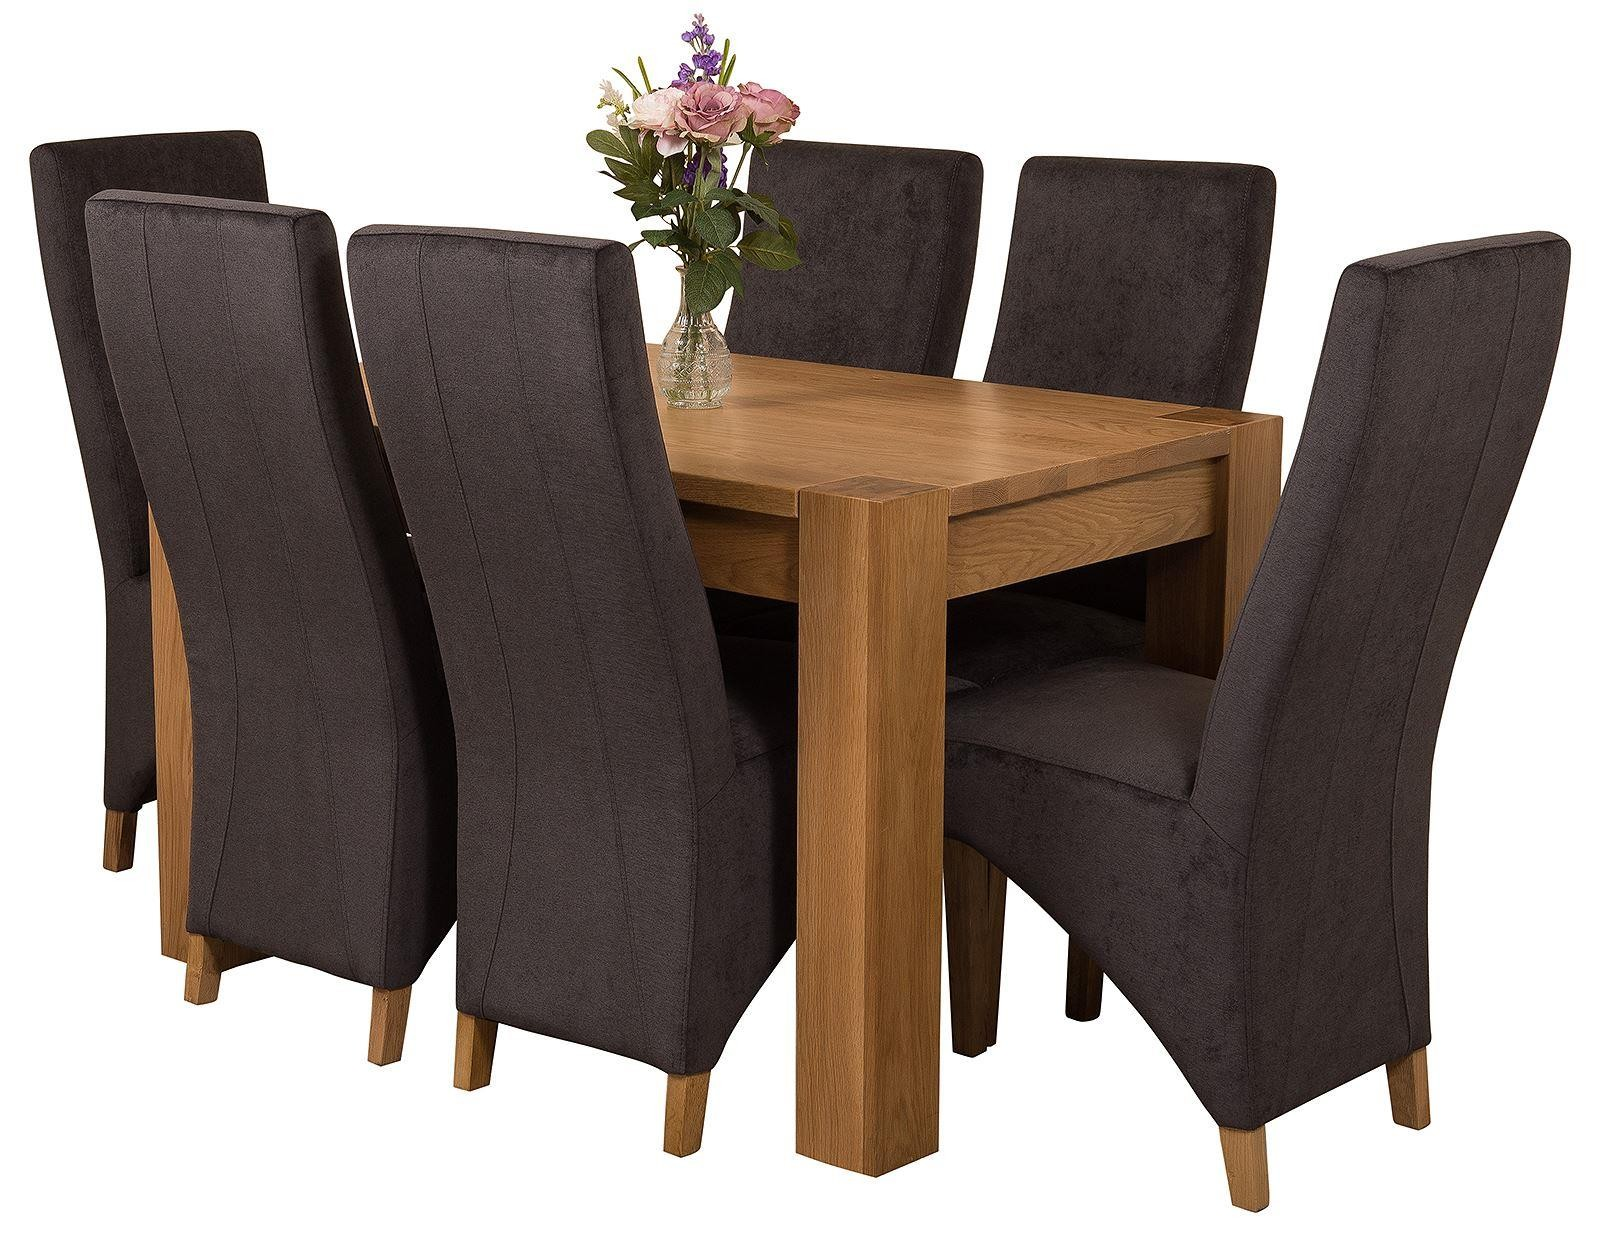 Kuba Solid Oak 125cm Dining Table with 6 Lola Dining Chairs [Black Fabric]